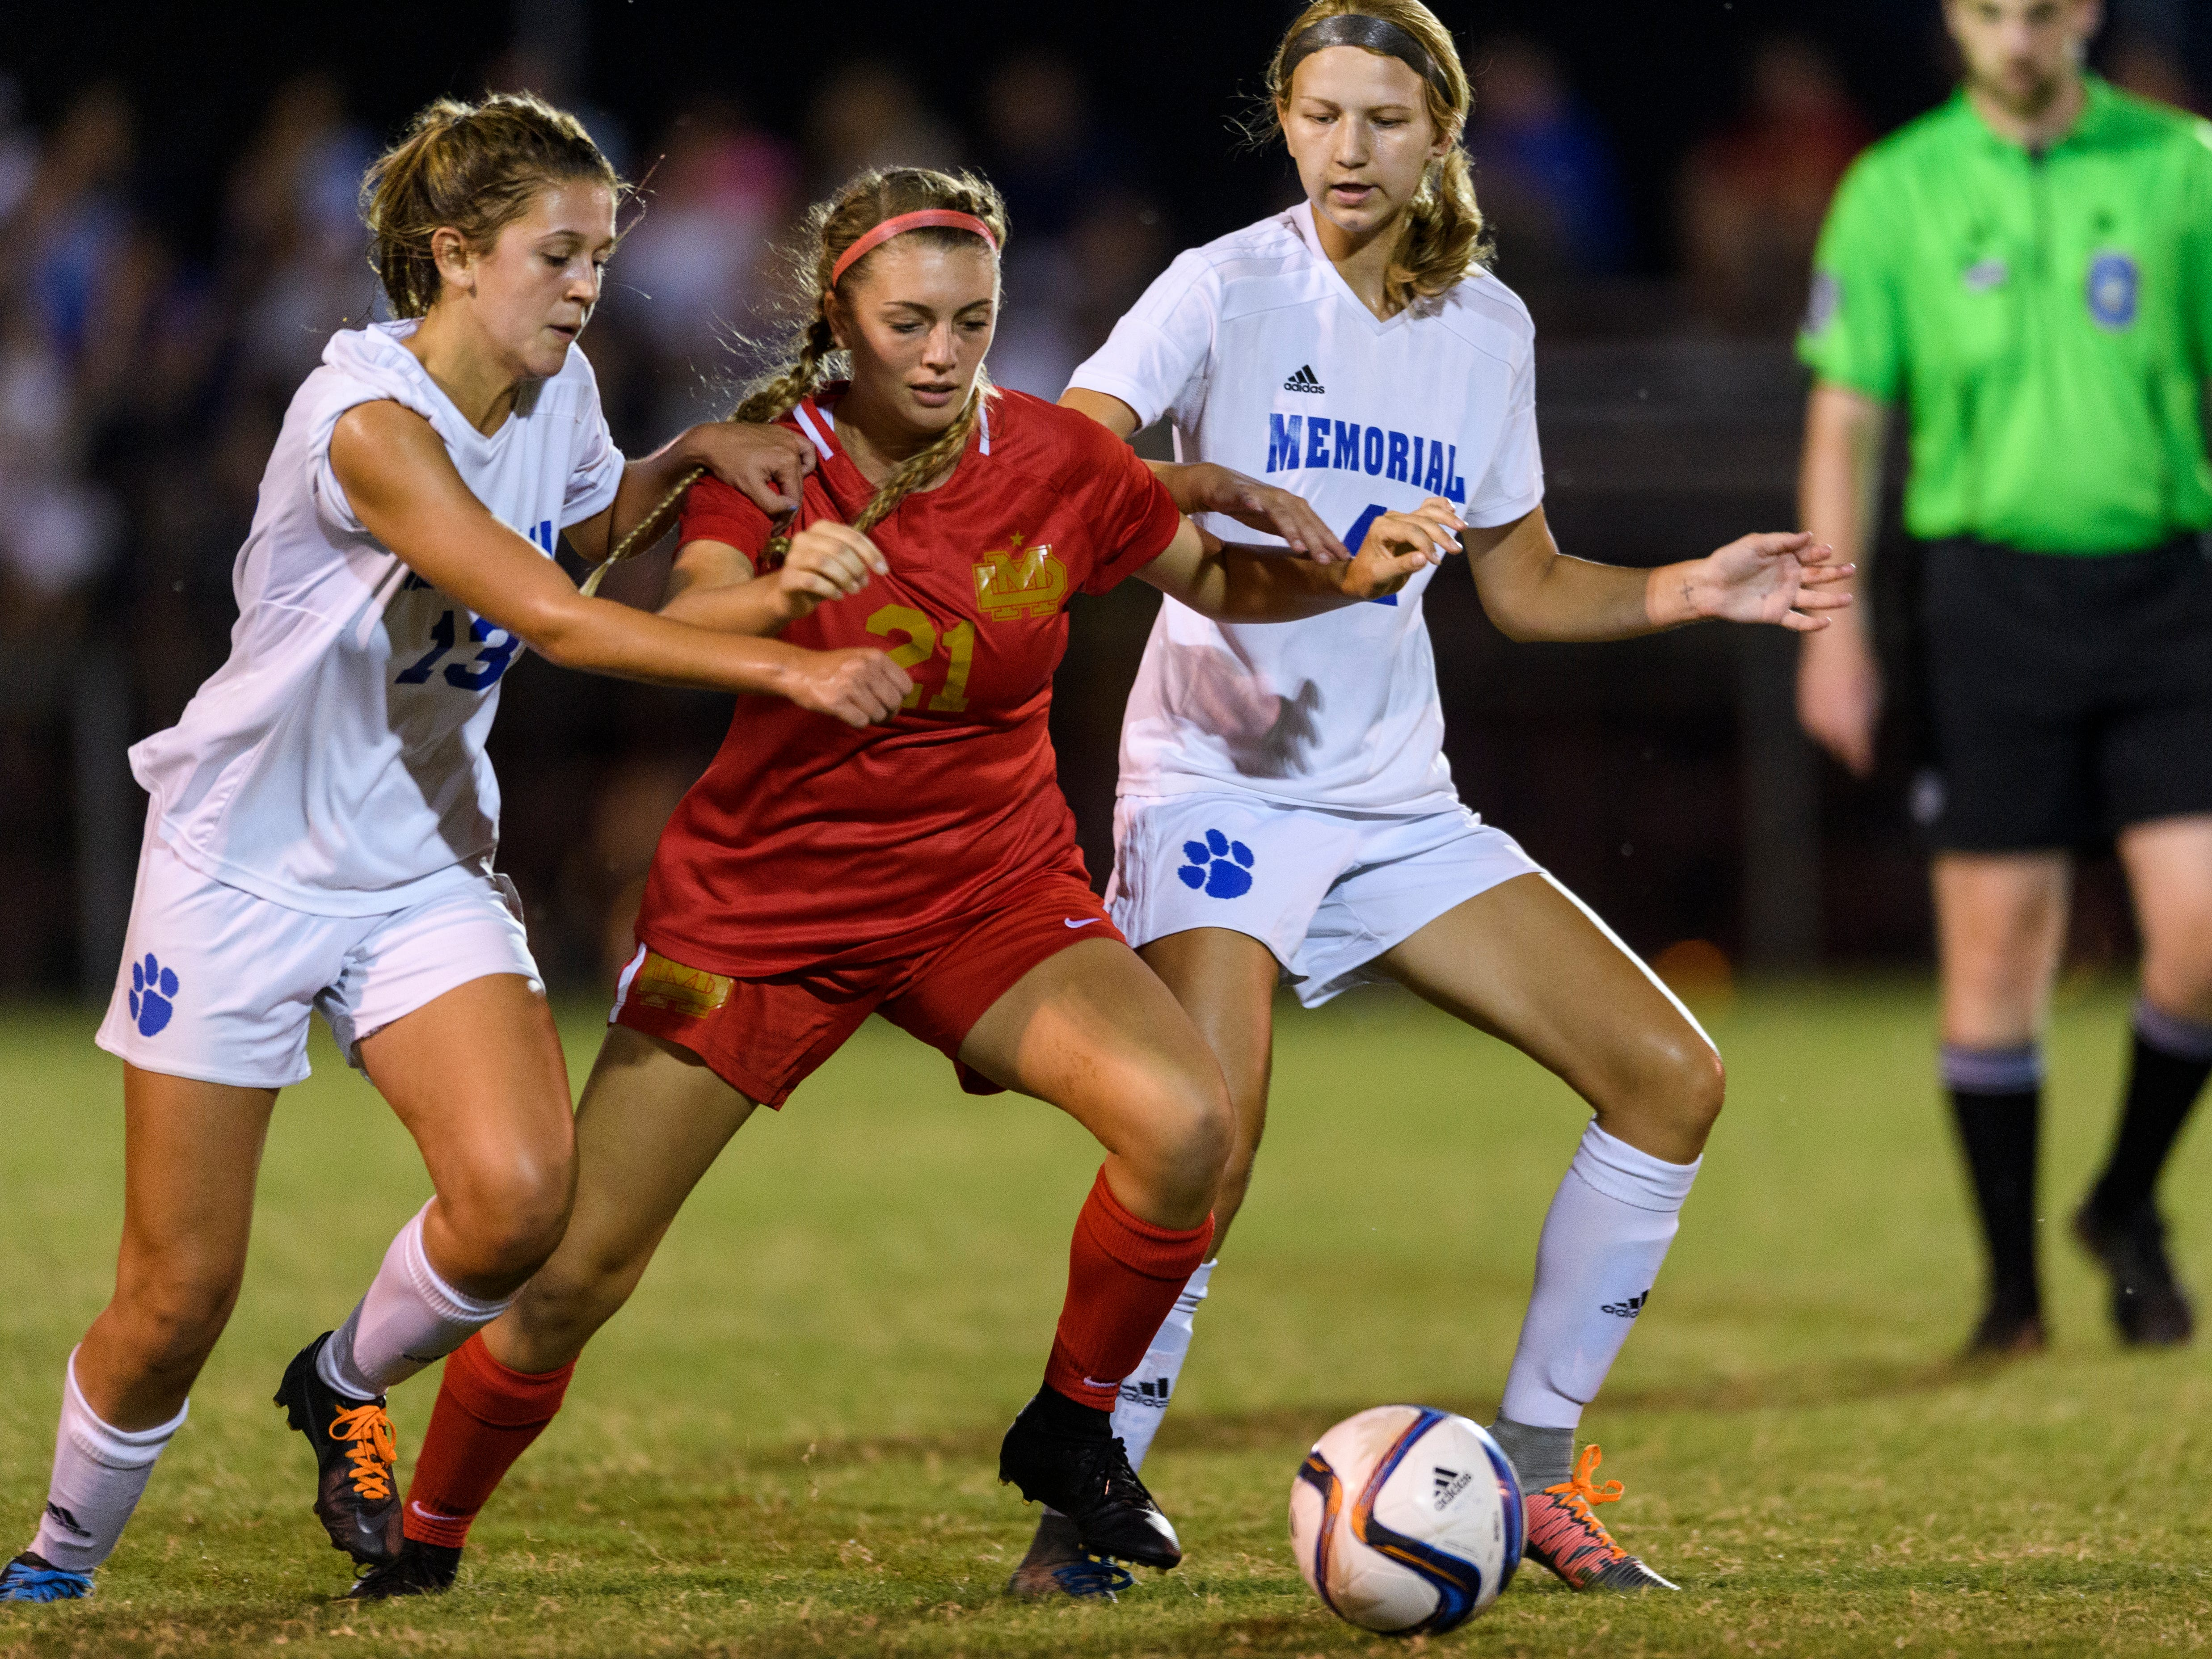 Memorial's Eve Timmons (13), Mater Dei's Audrey McDurmon (21) and Memorial's Abby Burger (4) fight for possession of the ball at the EVSC Soccer Fields in Evansville, Ind., Monday, Aug. 20, 2018. The Tigers defeated the Wildcats 4-0.